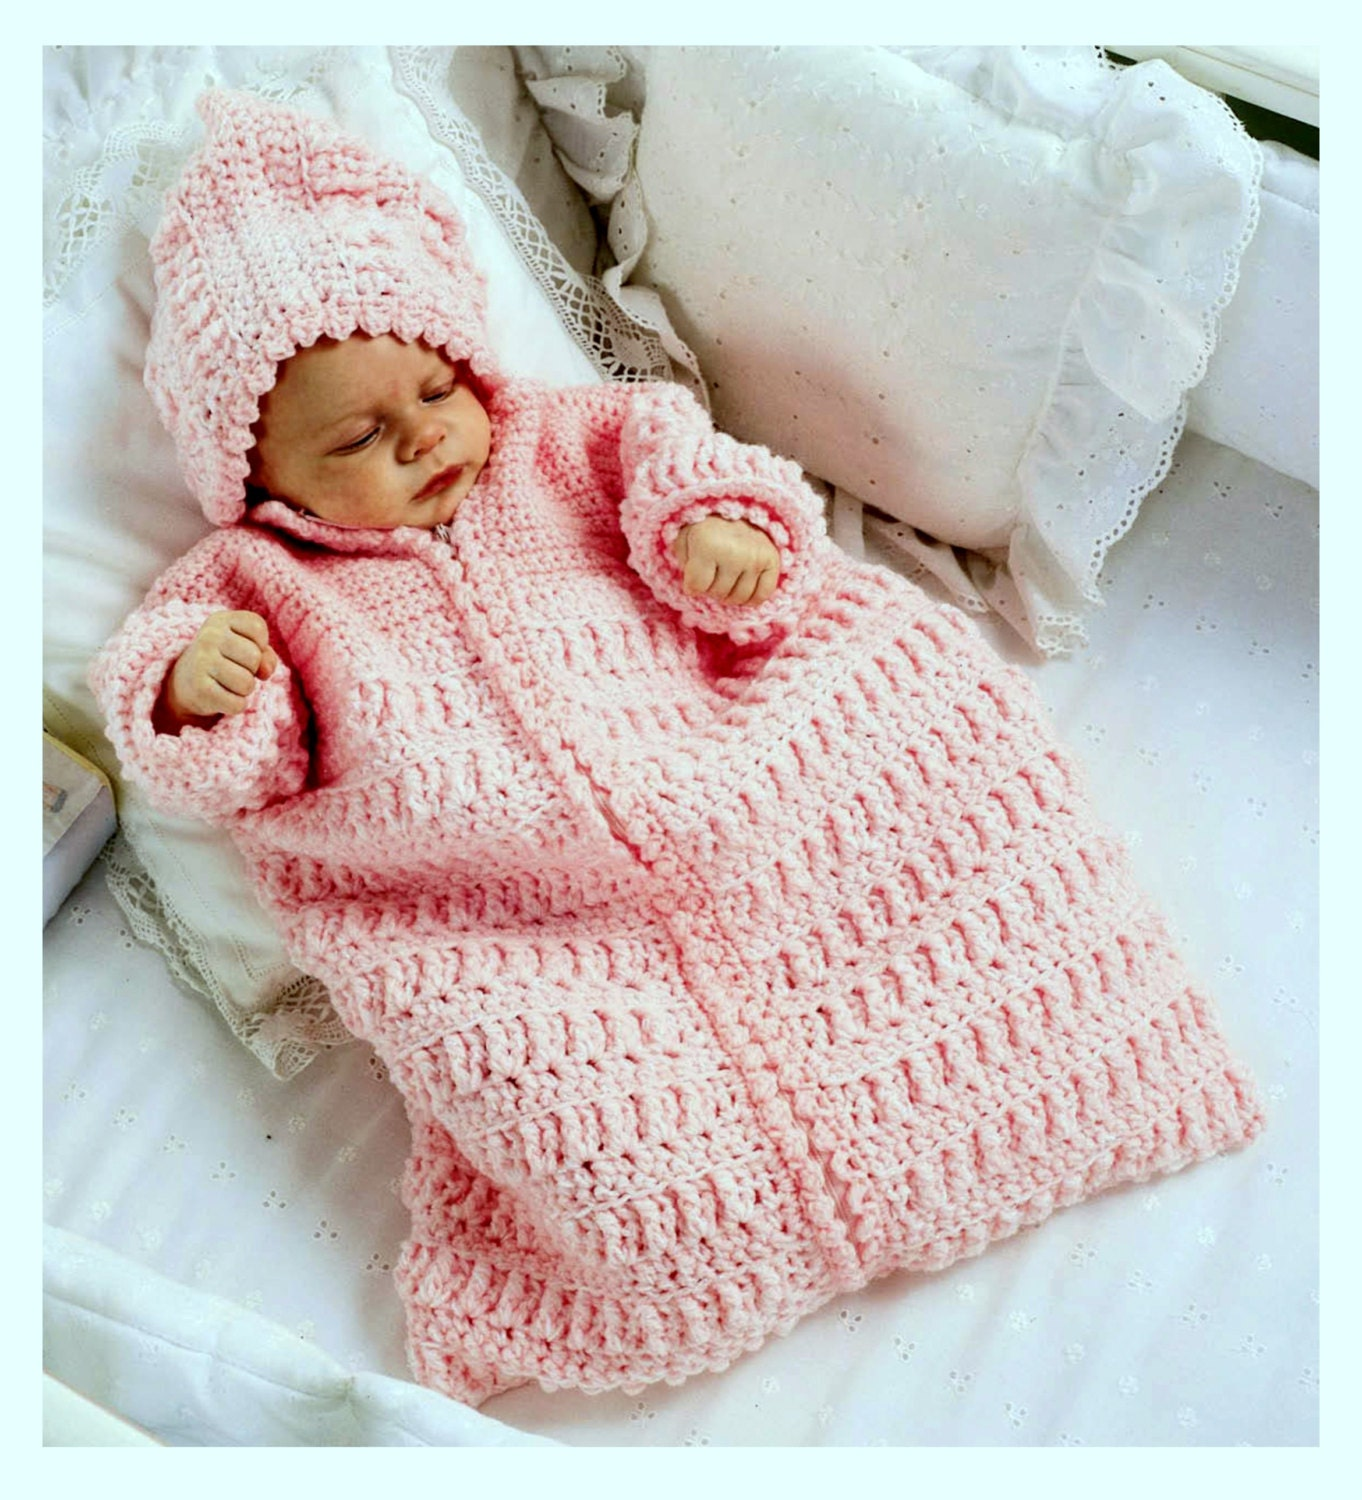 a6e67aeb490a6c Vintage Crochet Pattern Baby Sleeping Bag Cocoon Sleep Sack